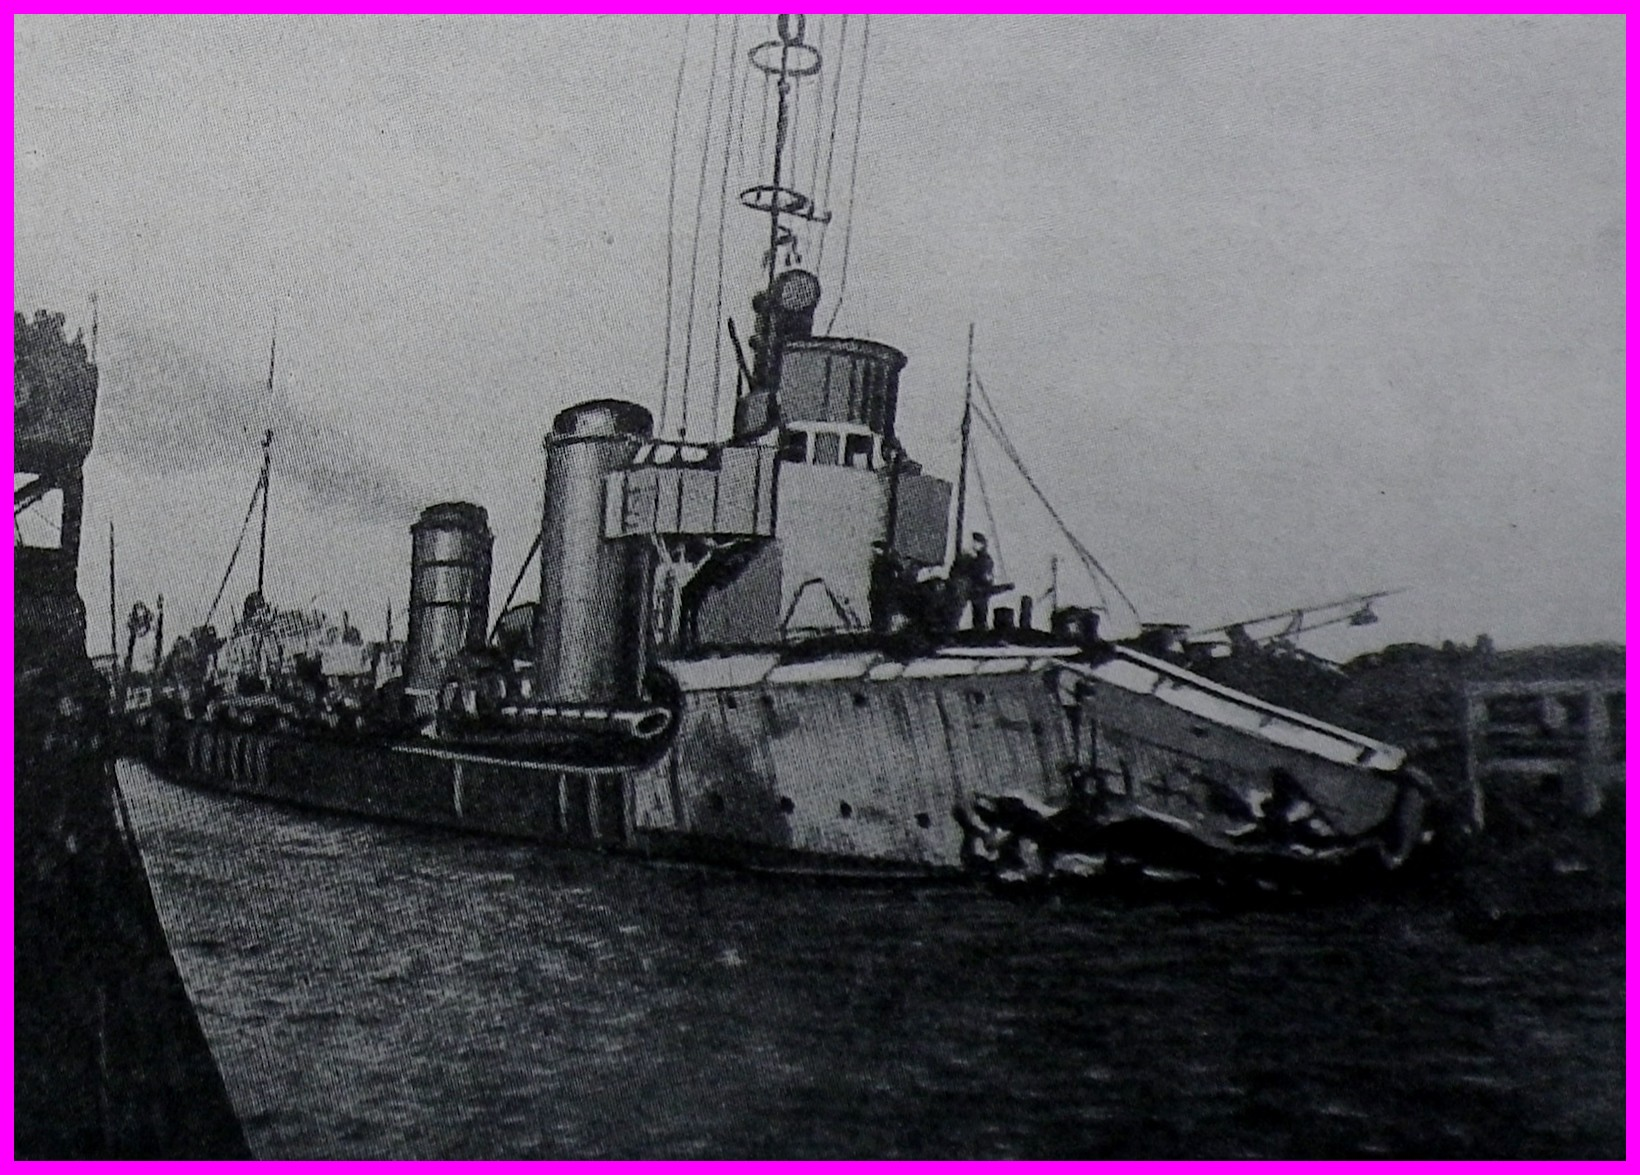 Calais 14 18 destroyer allemand a son retour du raid contre le barrage du gris nez 15 avril 1918 photo prise a zeebrugge encadre